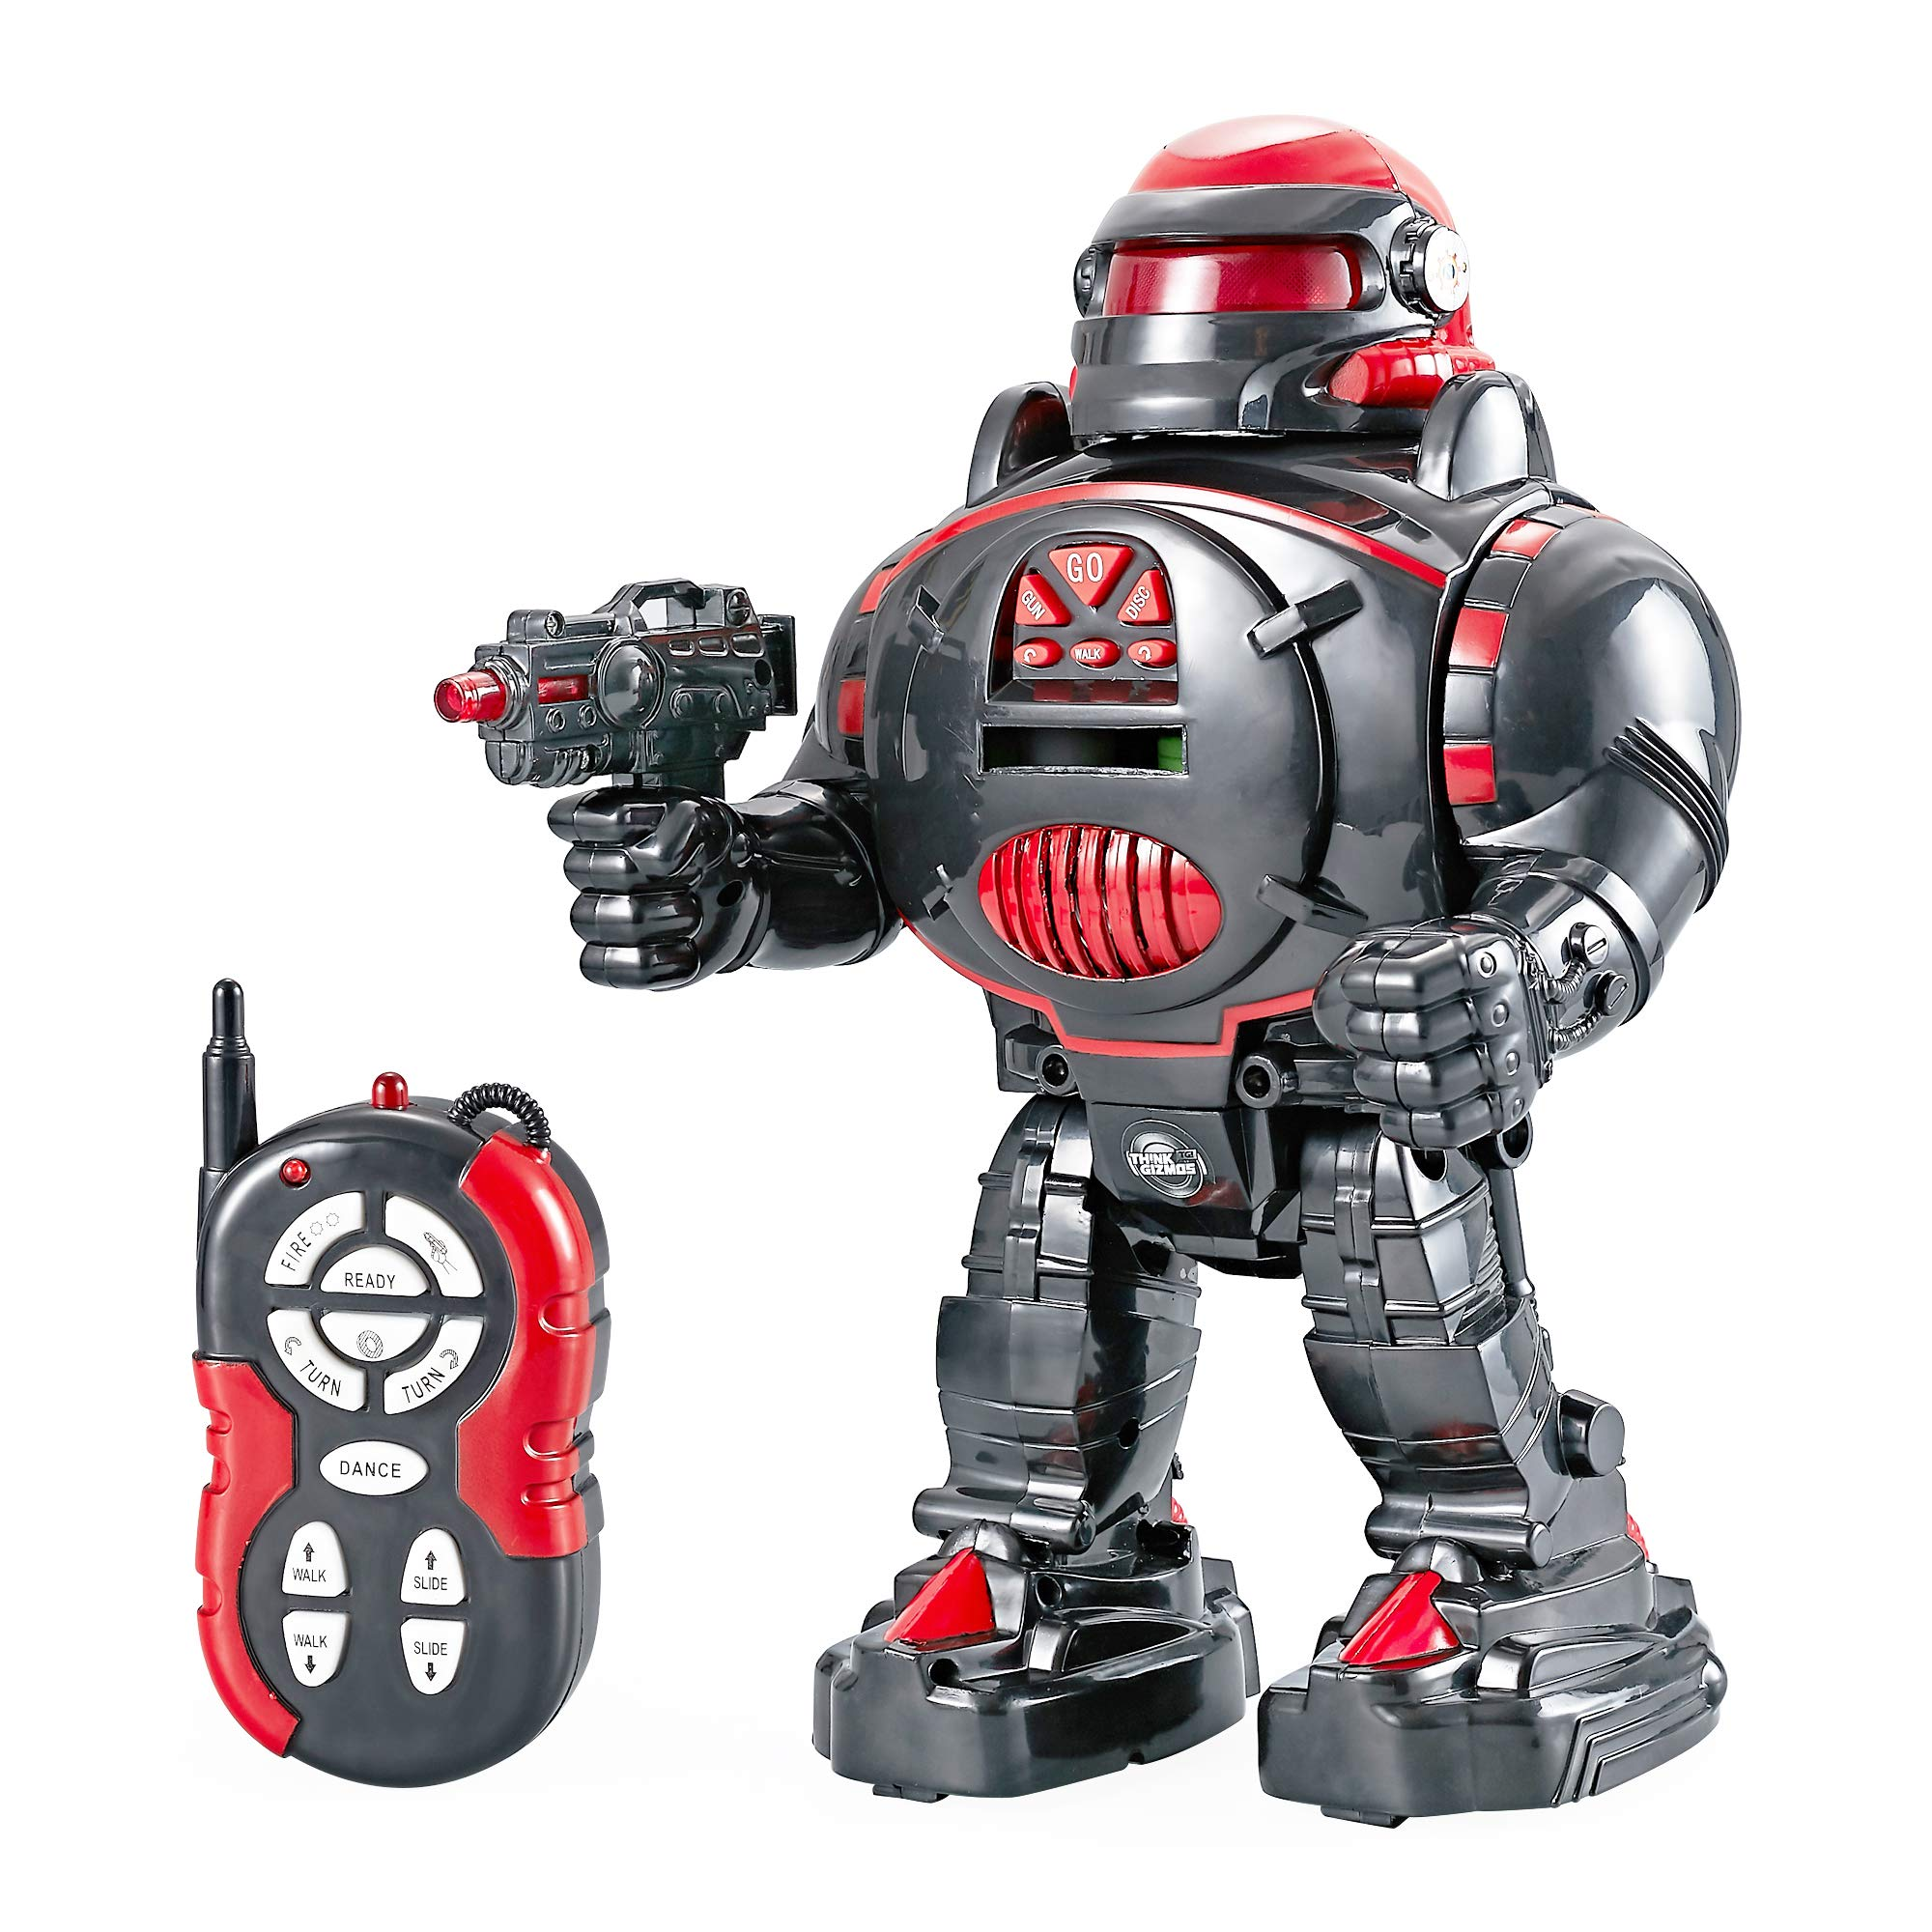 Think Gizmos Remote Control Robot for Kids - RoboShooter Robot Toy for Boys & Girls Aged 5 6 7 8 (Black) by Think Gizmos (Image #4)